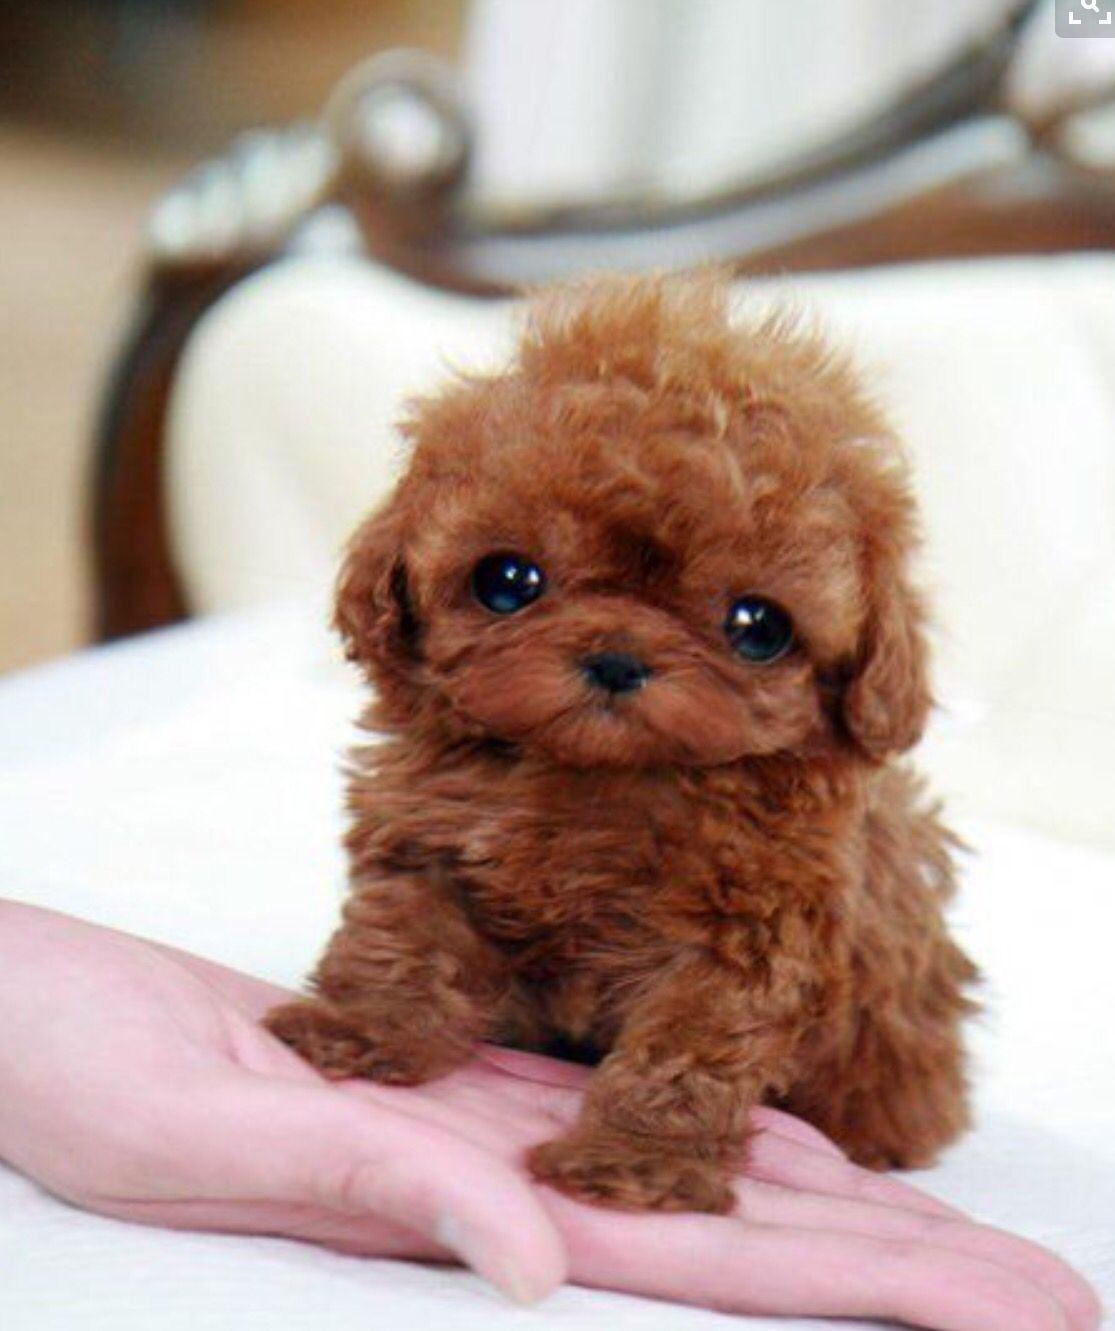 As much as this tea cup puppy is cute the way they get